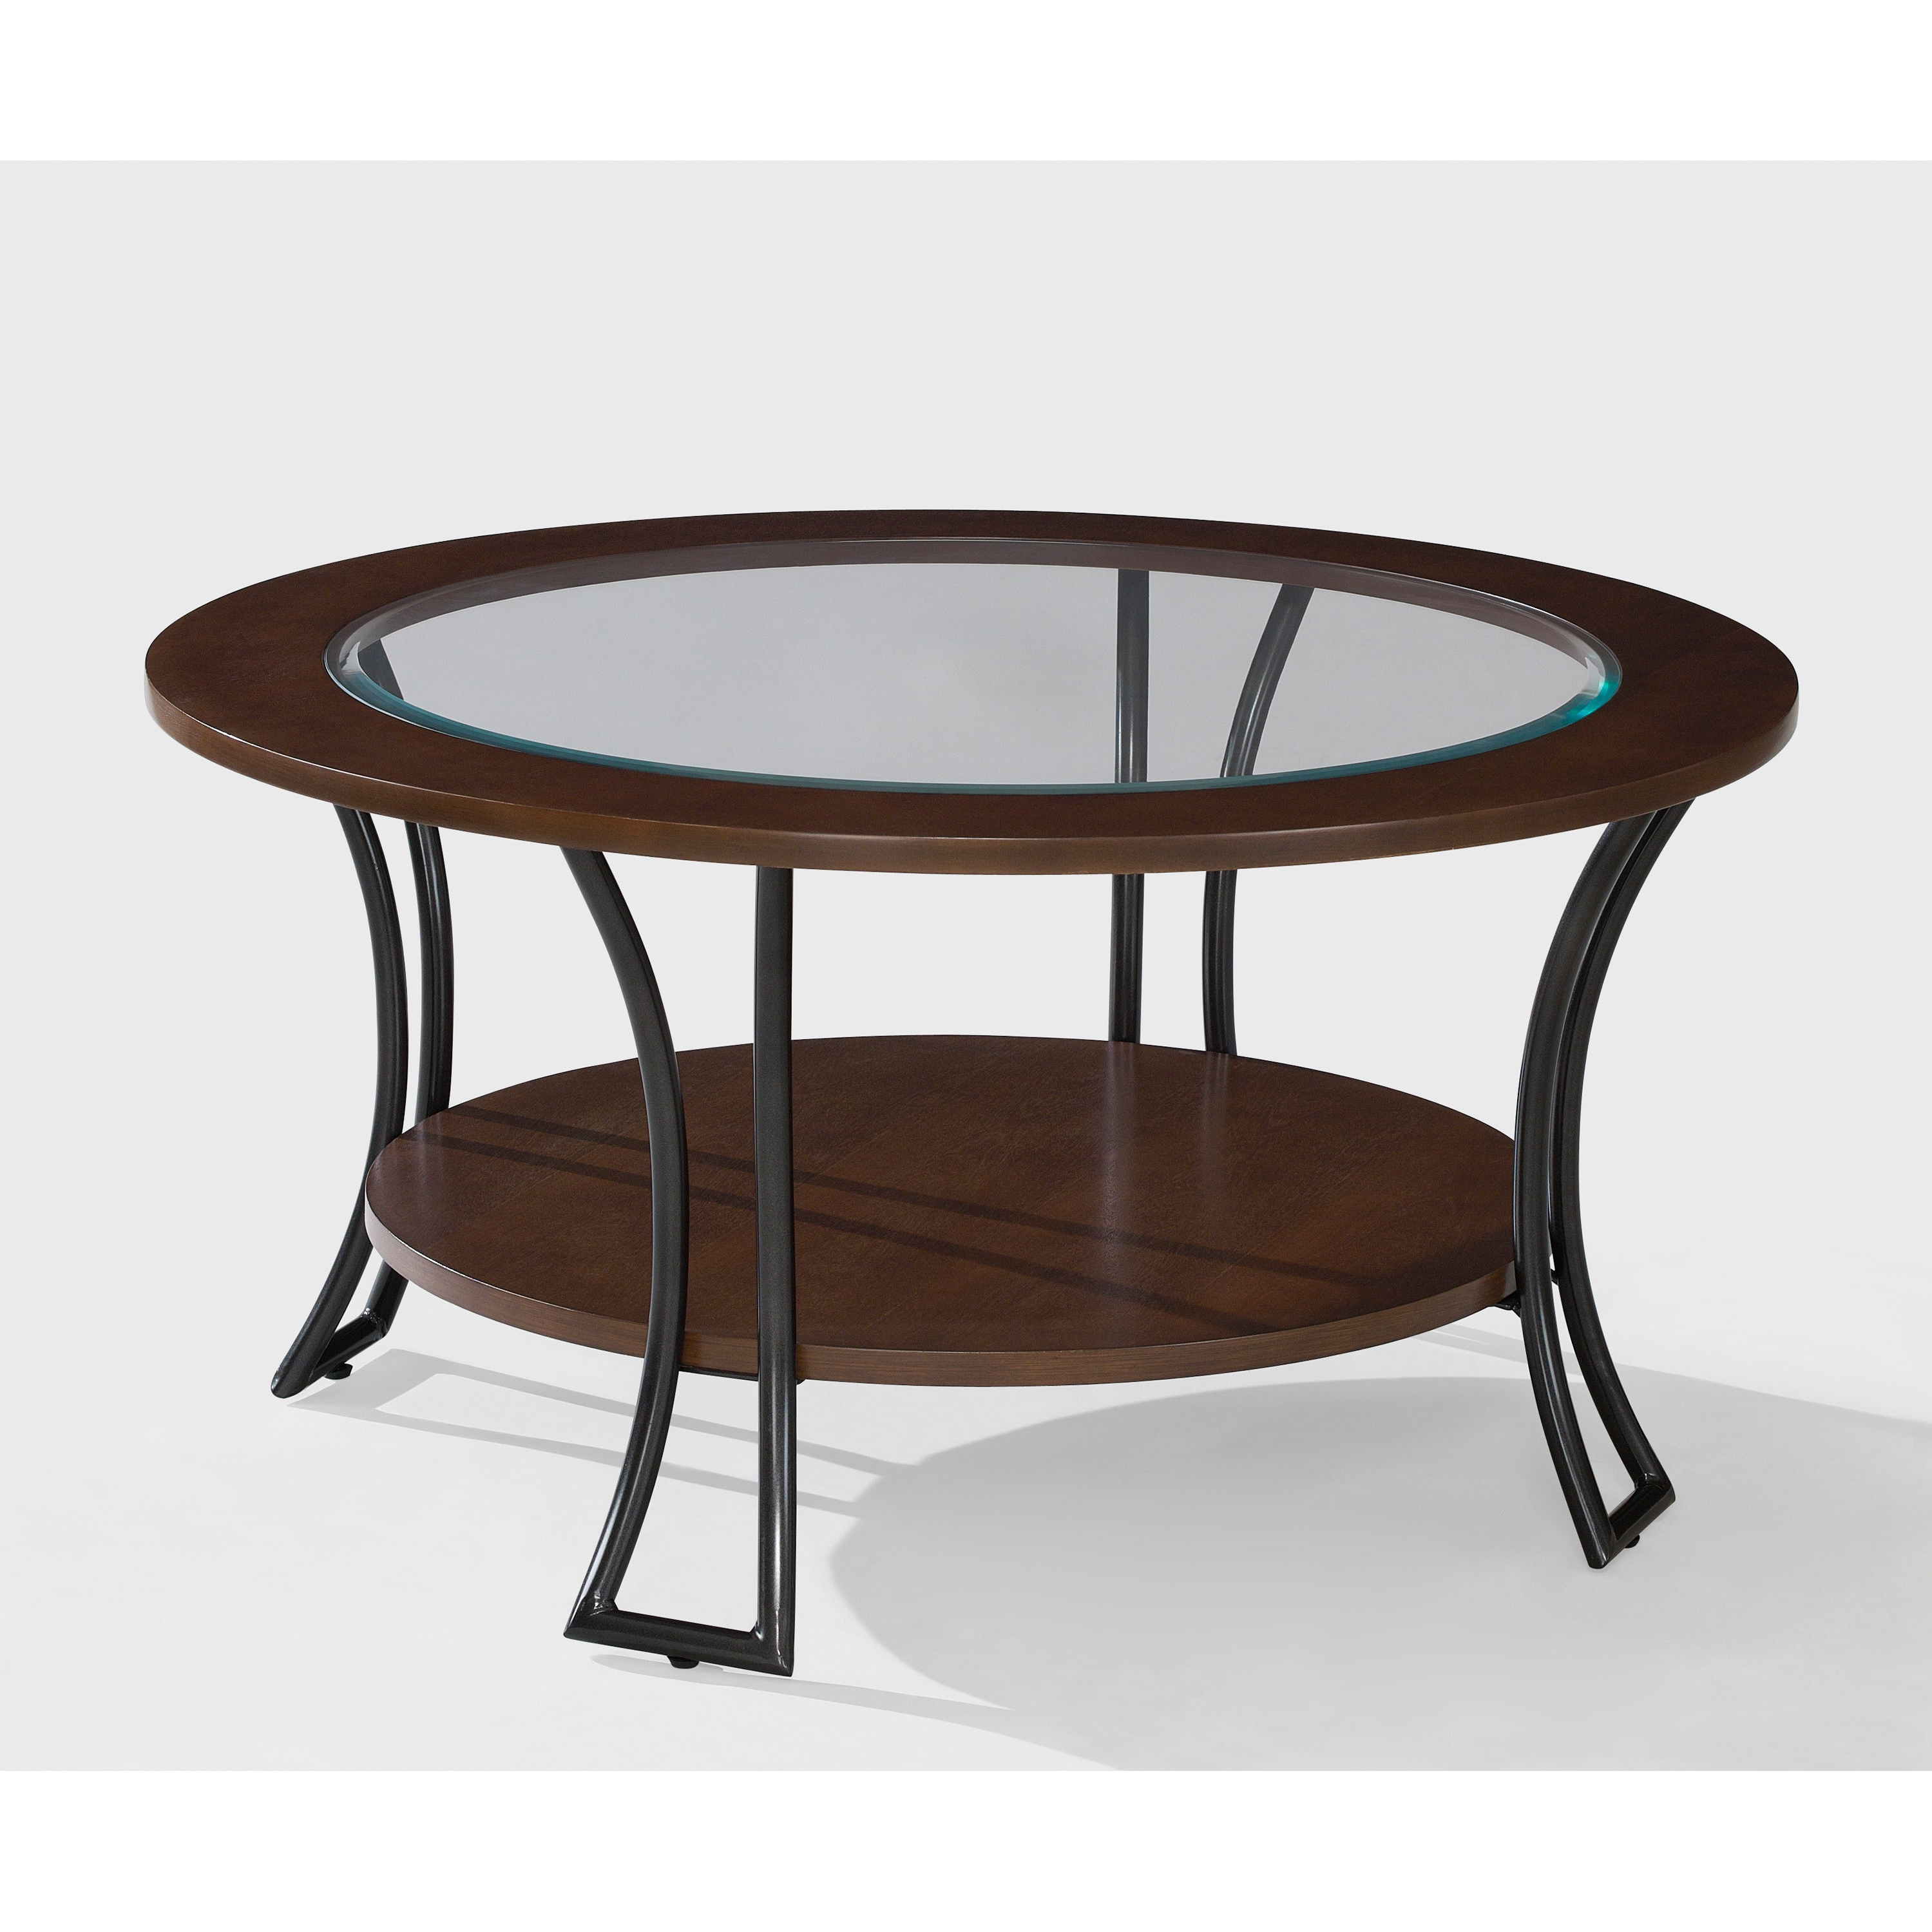 Well Known Copper Grove Halesia Chocolate Bronze Round Coffee Tables Regarding Copper Grove Carlisle Walnut/ Charcoal Grey Round Coffee Table (View 10 of 20)